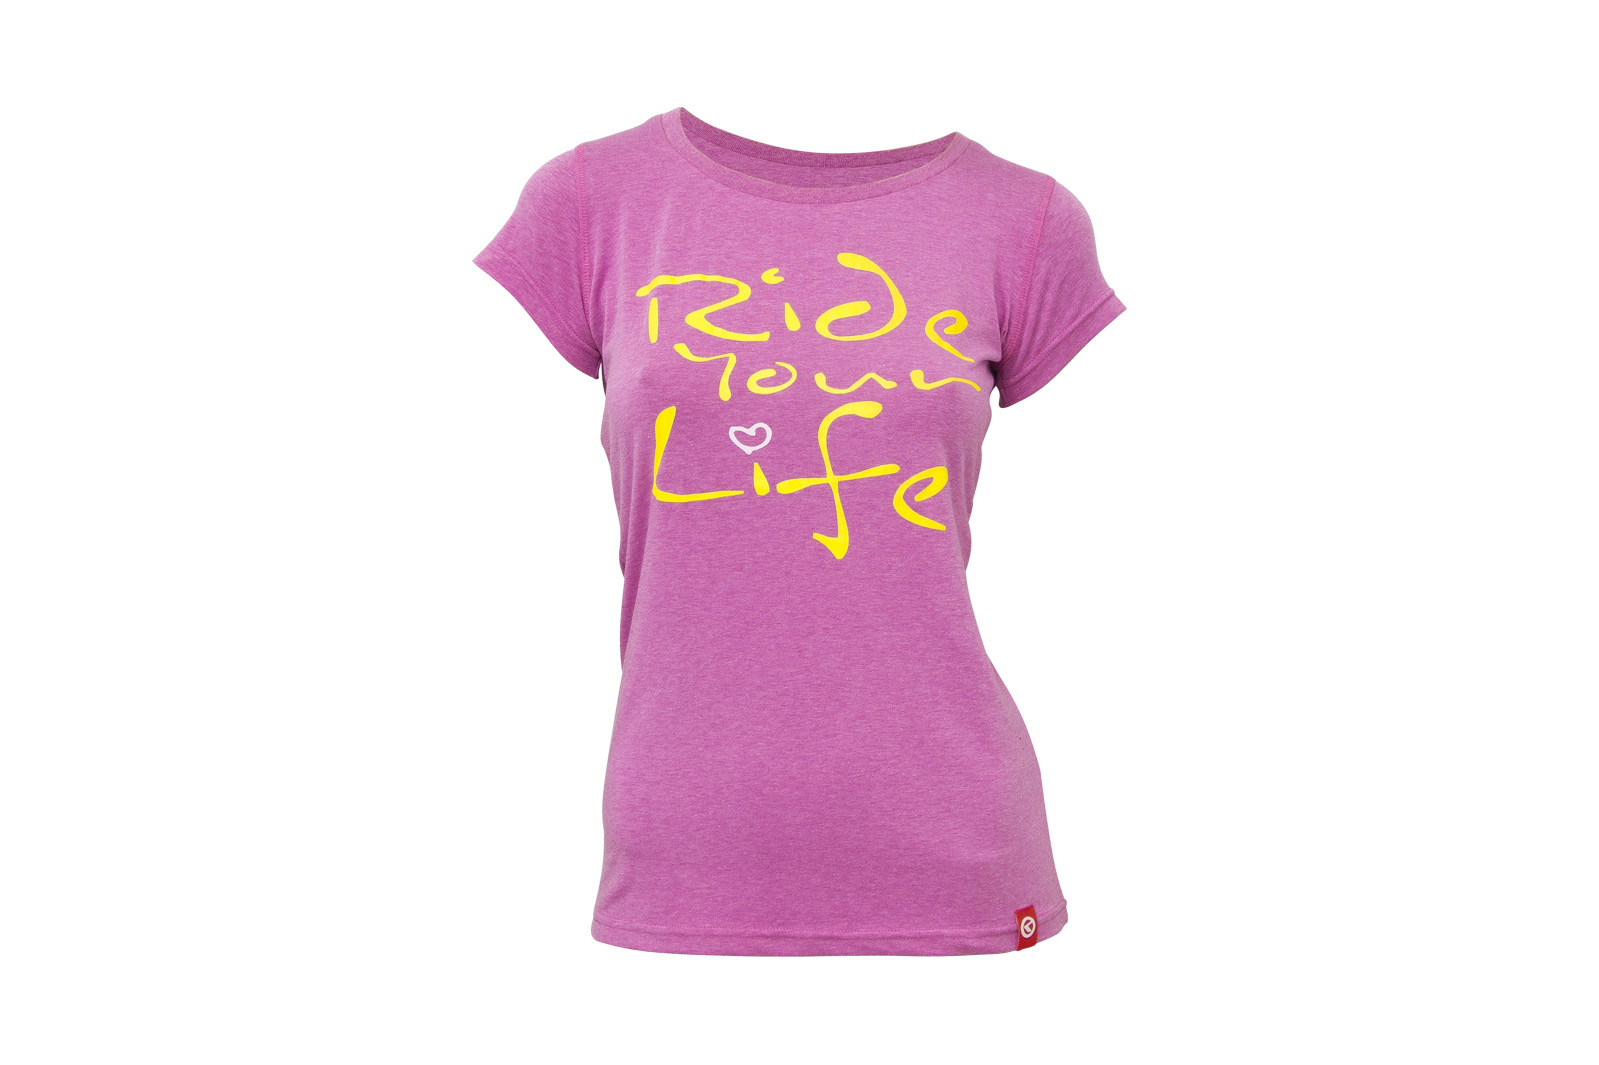 T-Shirt KELLYS WOMEN´S RIDE YOUR LIFE kurzarm Pink - XL - T-Shirt KELLYS WOMEN´S RIDE YOUR LIFE kurzarm Pink - XL